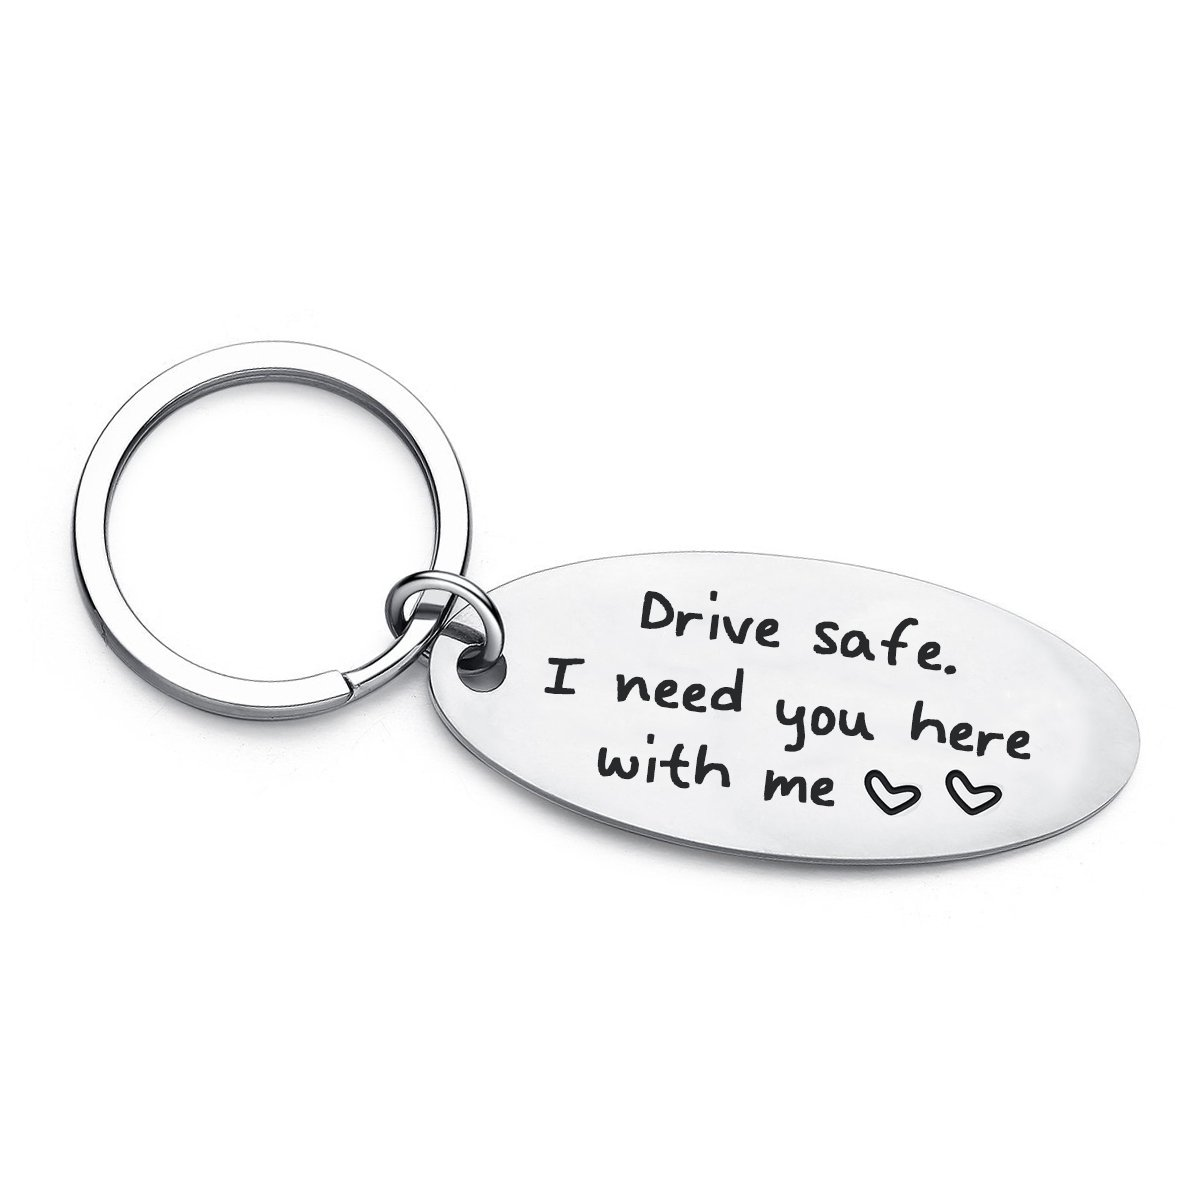 XYBAGS New Driver Gift for Her Or Him, Drive Safe I Need You Here with Me, Trucker Husband Boyfriend Keychain Gifts